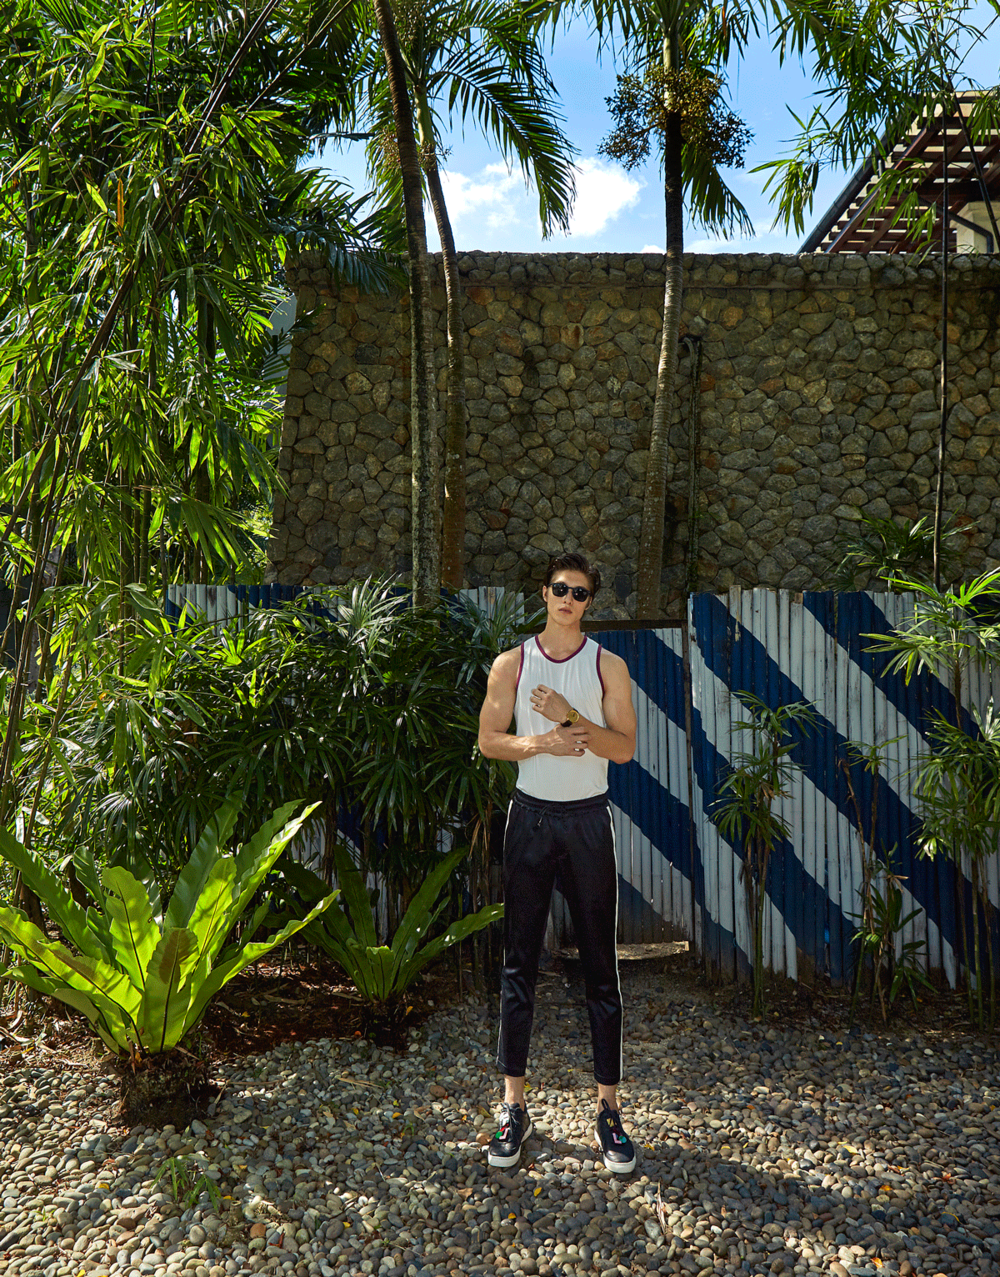 tank top : NOXX wear / pants and shoes : The Leisure Projects / sunglasses : See Concept